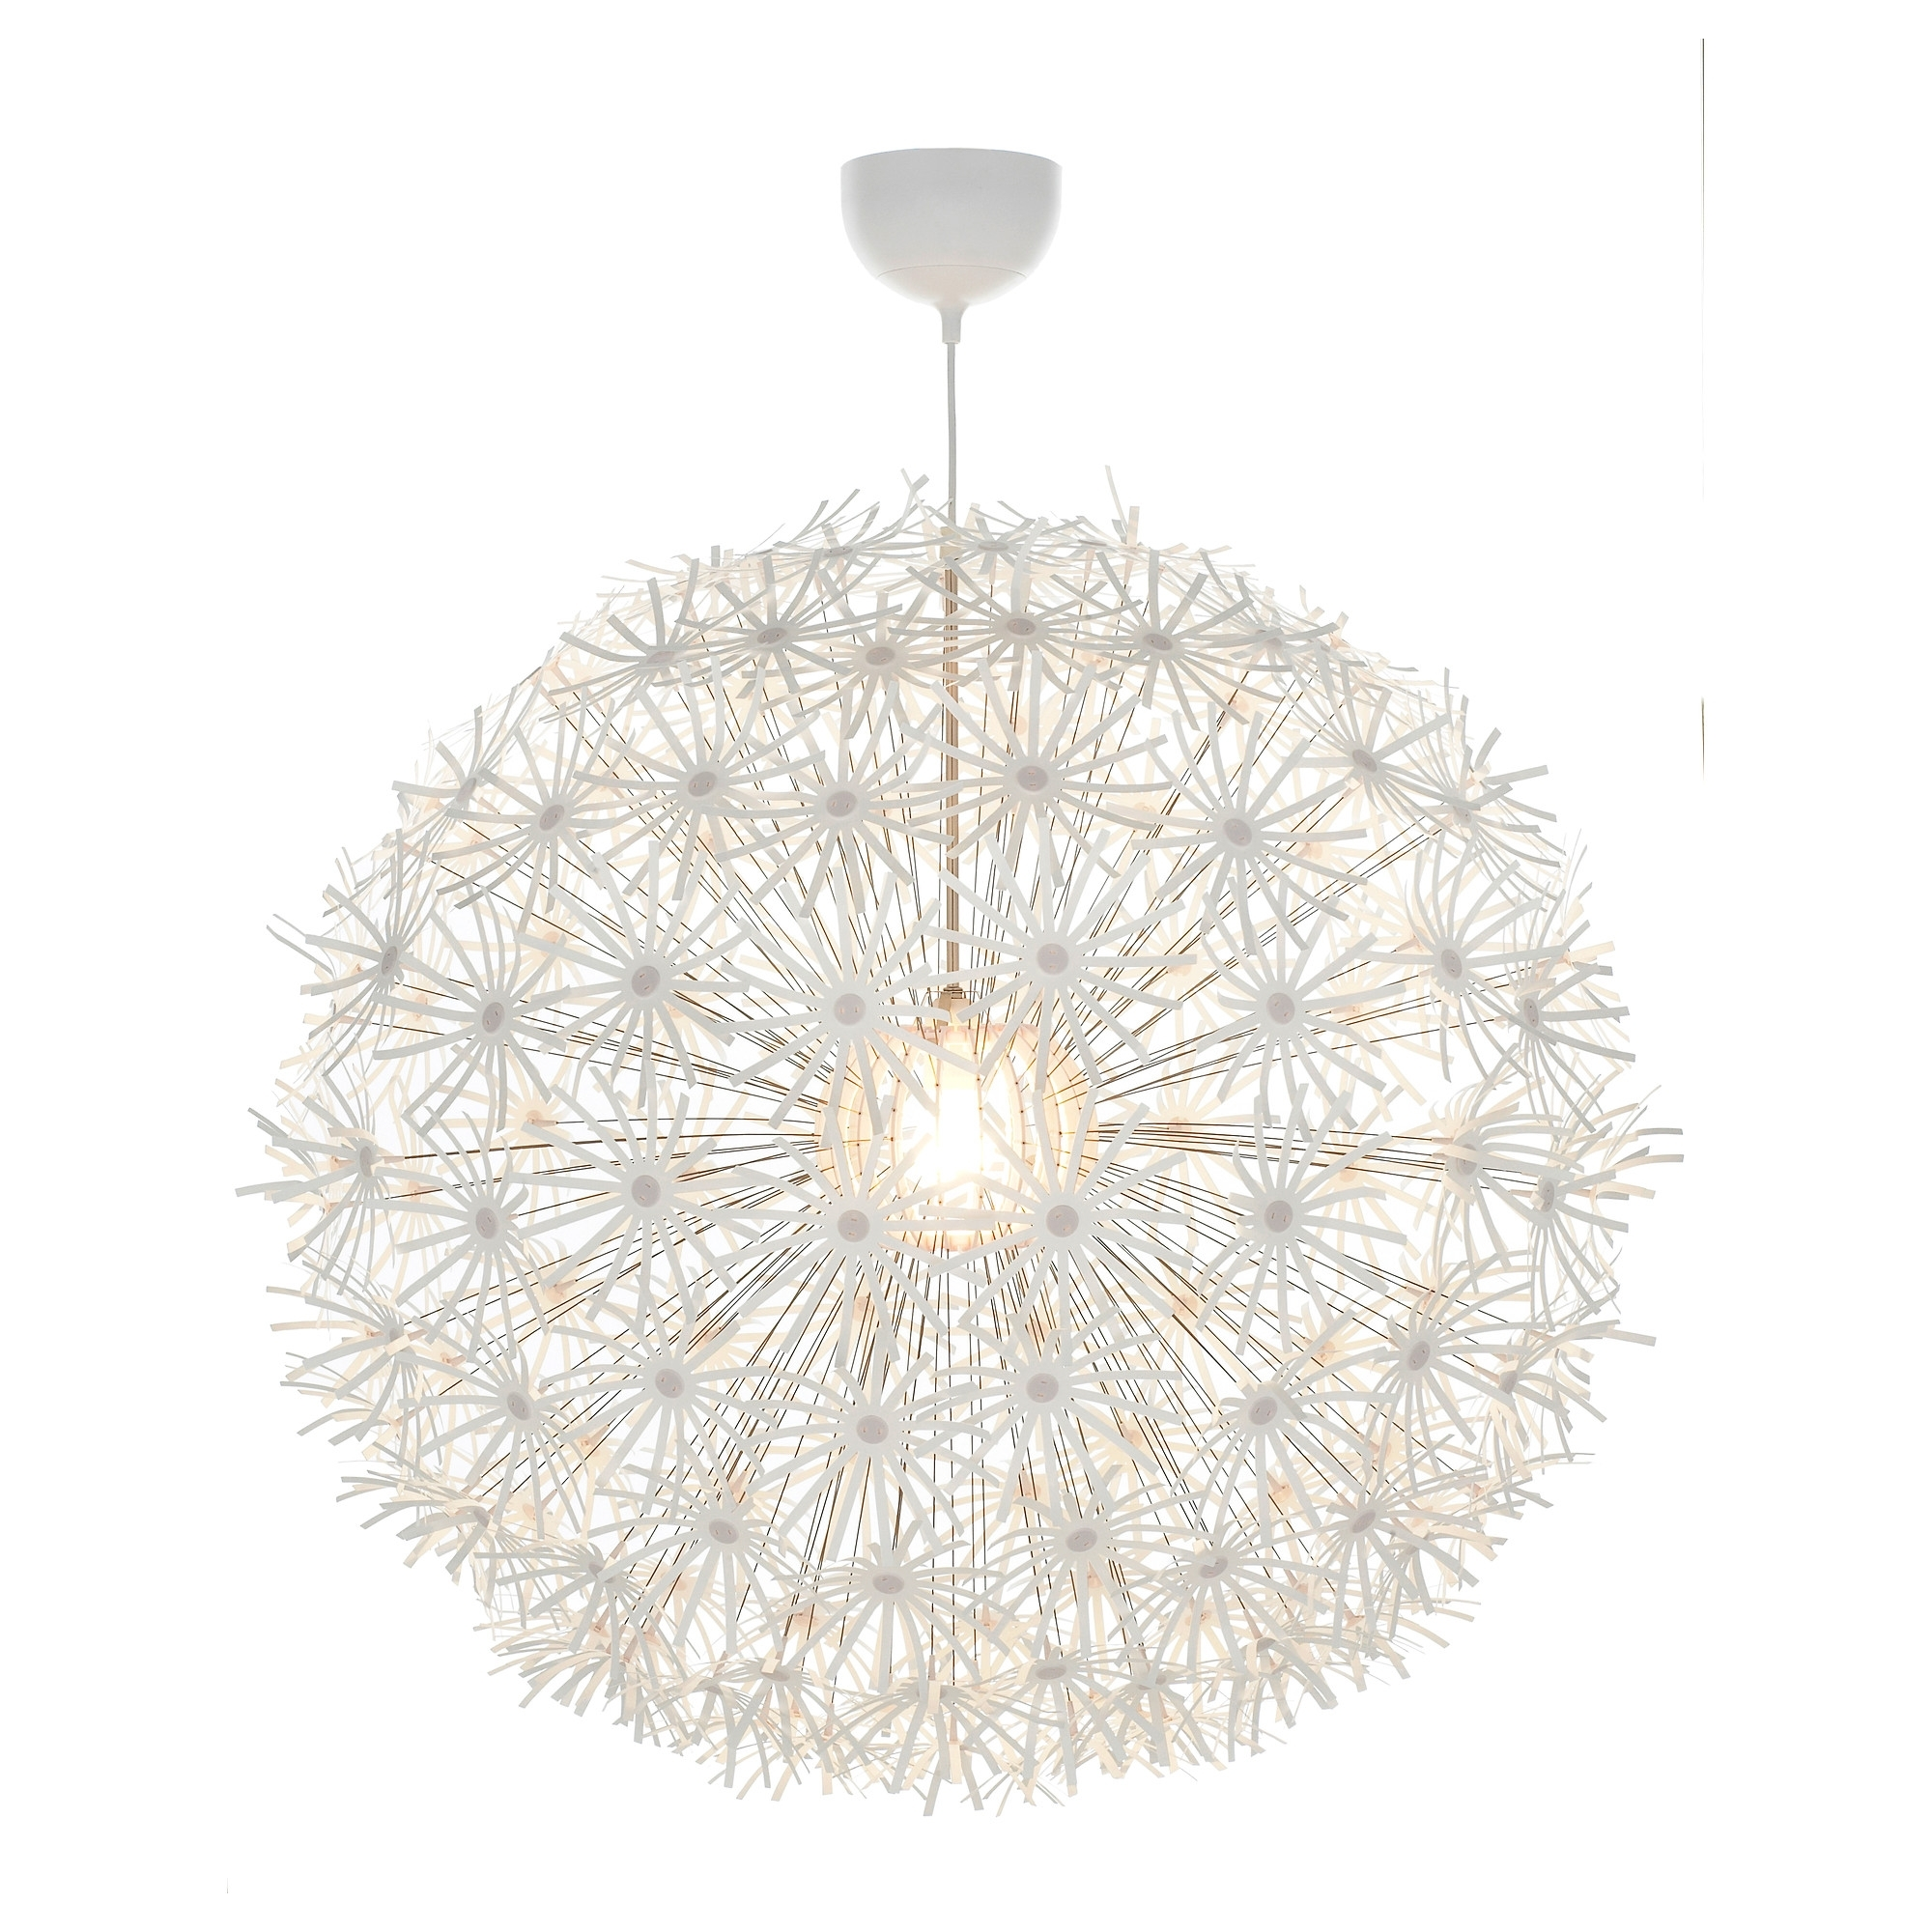 Well Known Chandeliers Design : Wonderful Ikea Ps Maskros Pendant Lamp Ceiling Intended For Unusual Chandeliers (View 15 of 15)